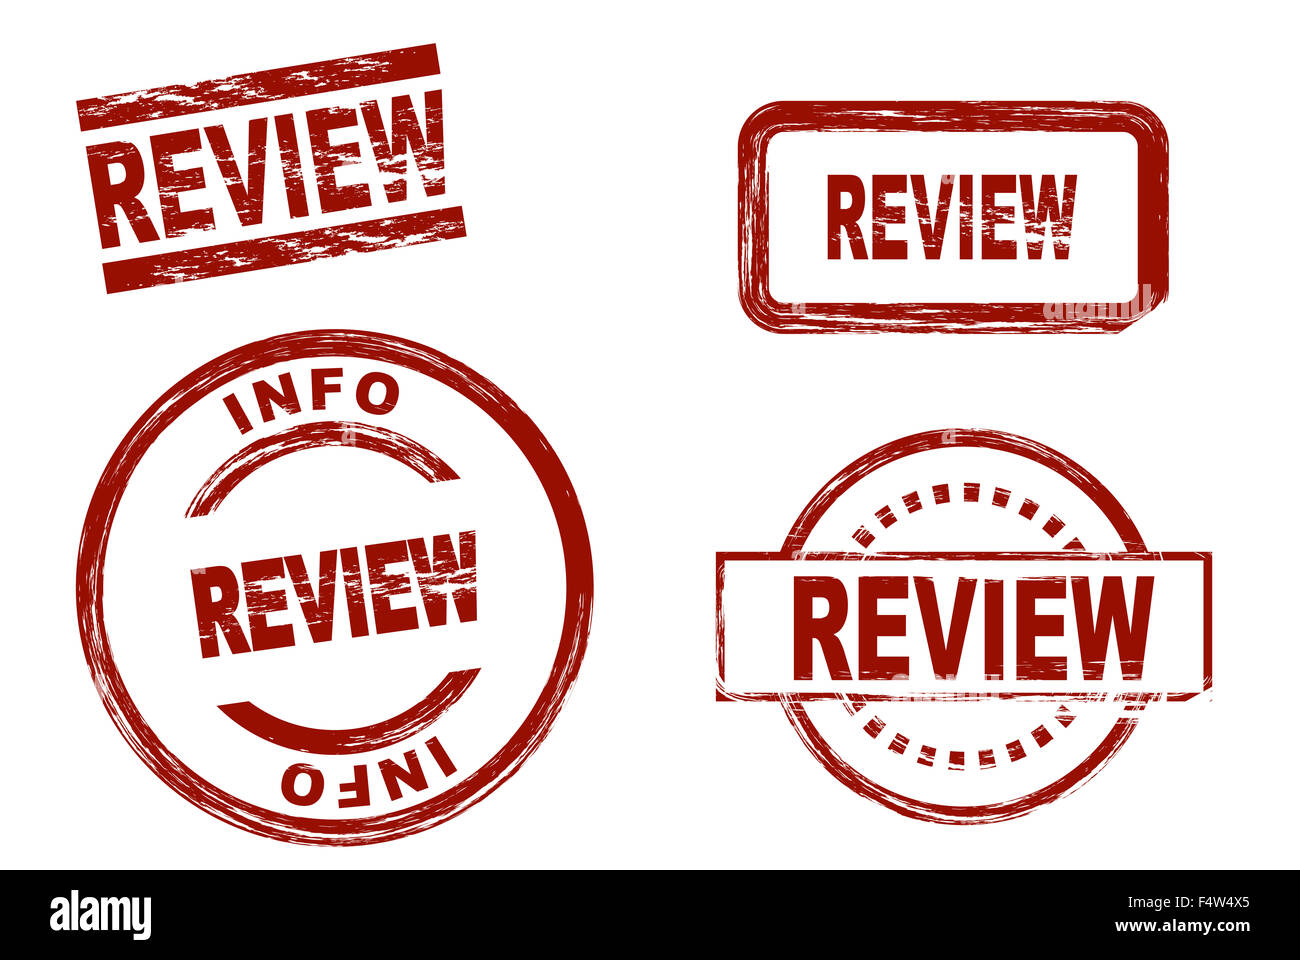 Set of stylized red stamps showing the term review. All on white background. - Stock Image